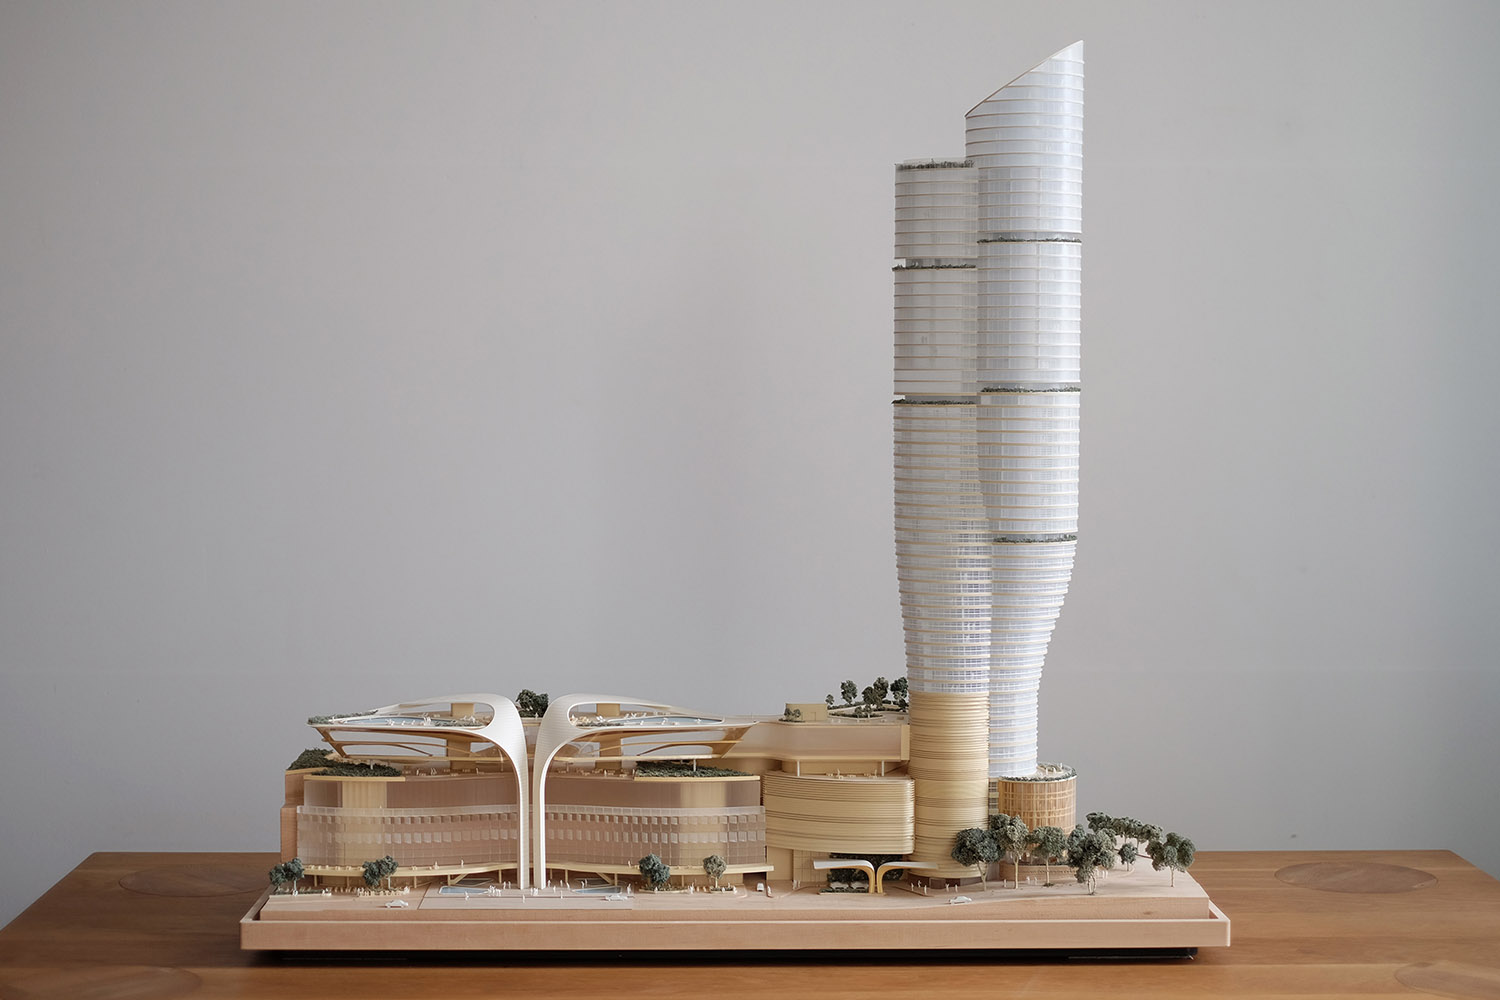 Ritz-Carlton at The Star by FJMT Architects